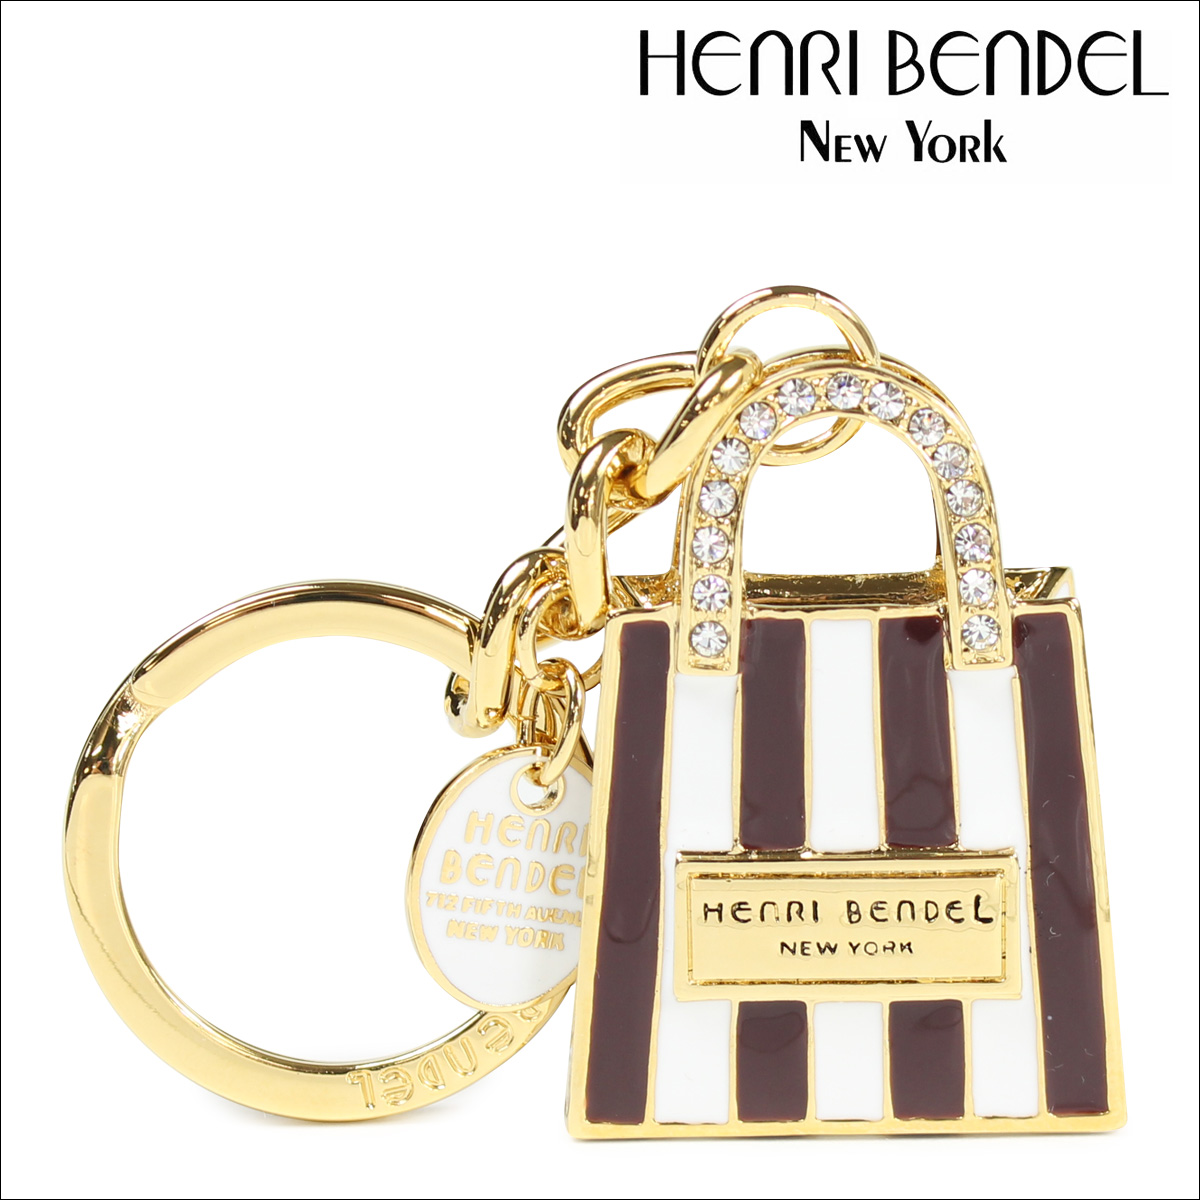 Henri Bendel Shopping Bag Key Fob sRM4vDqma